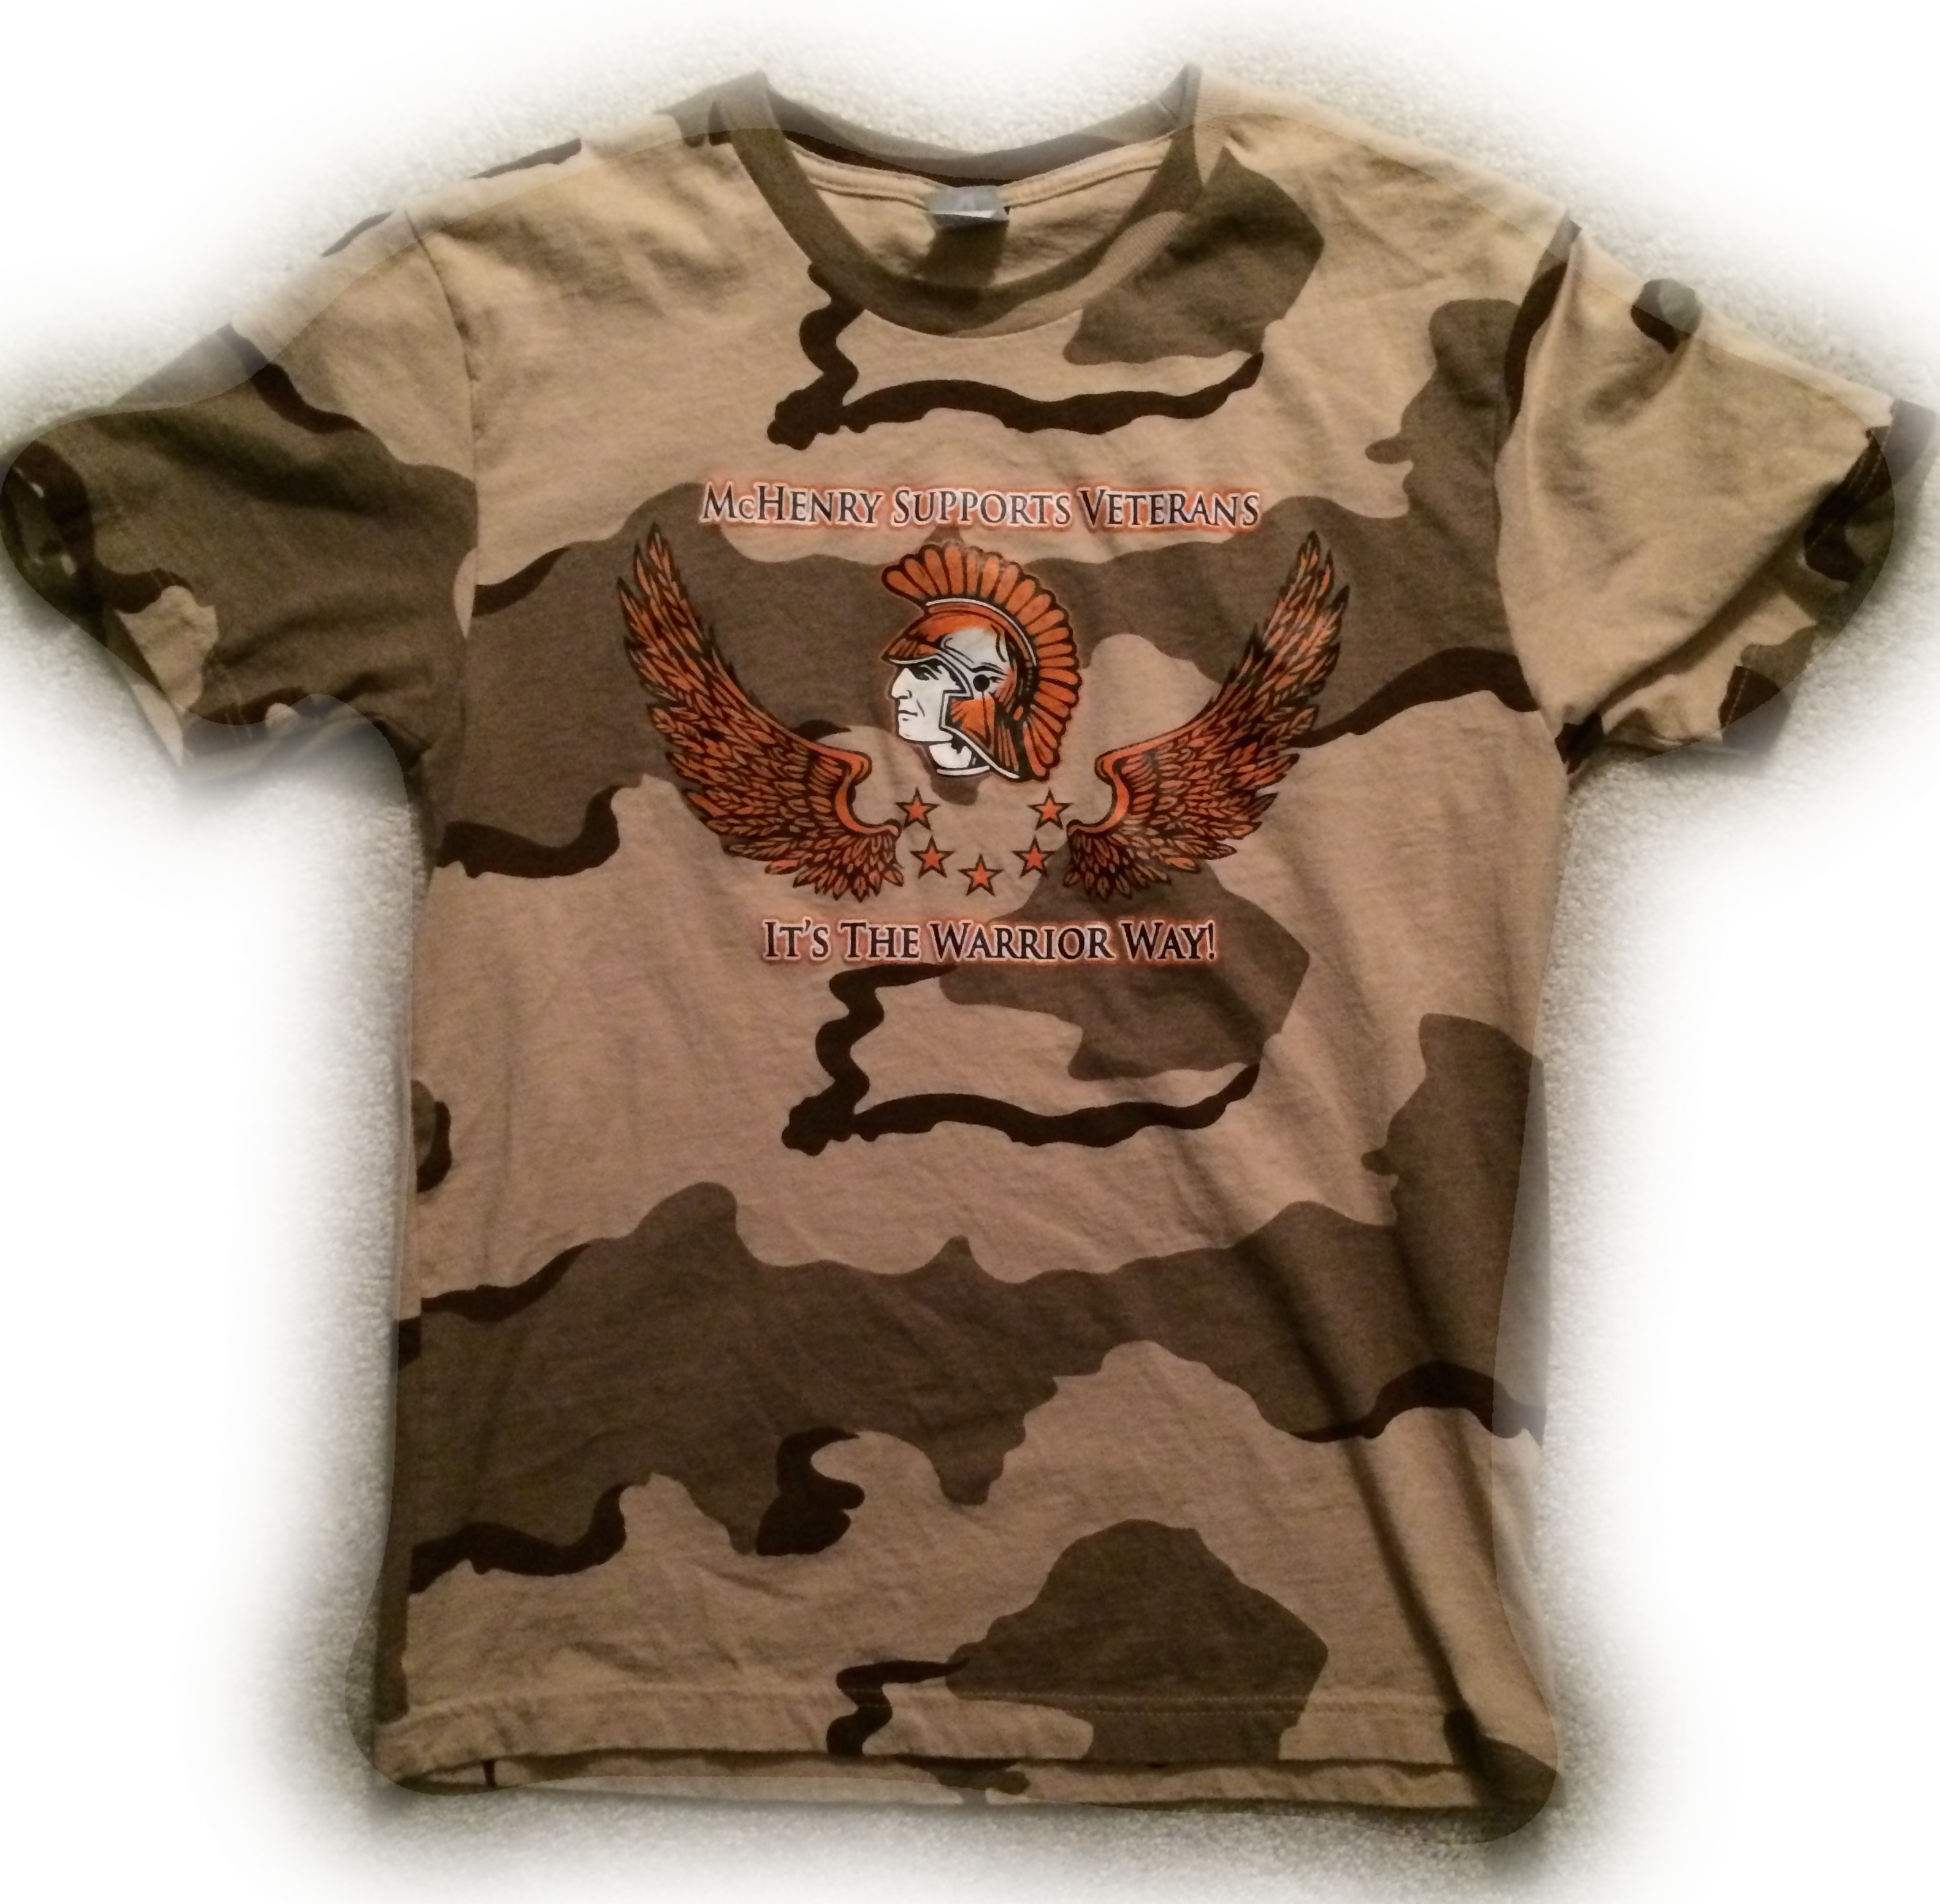 McHenry Supports Veterans T-Shirt